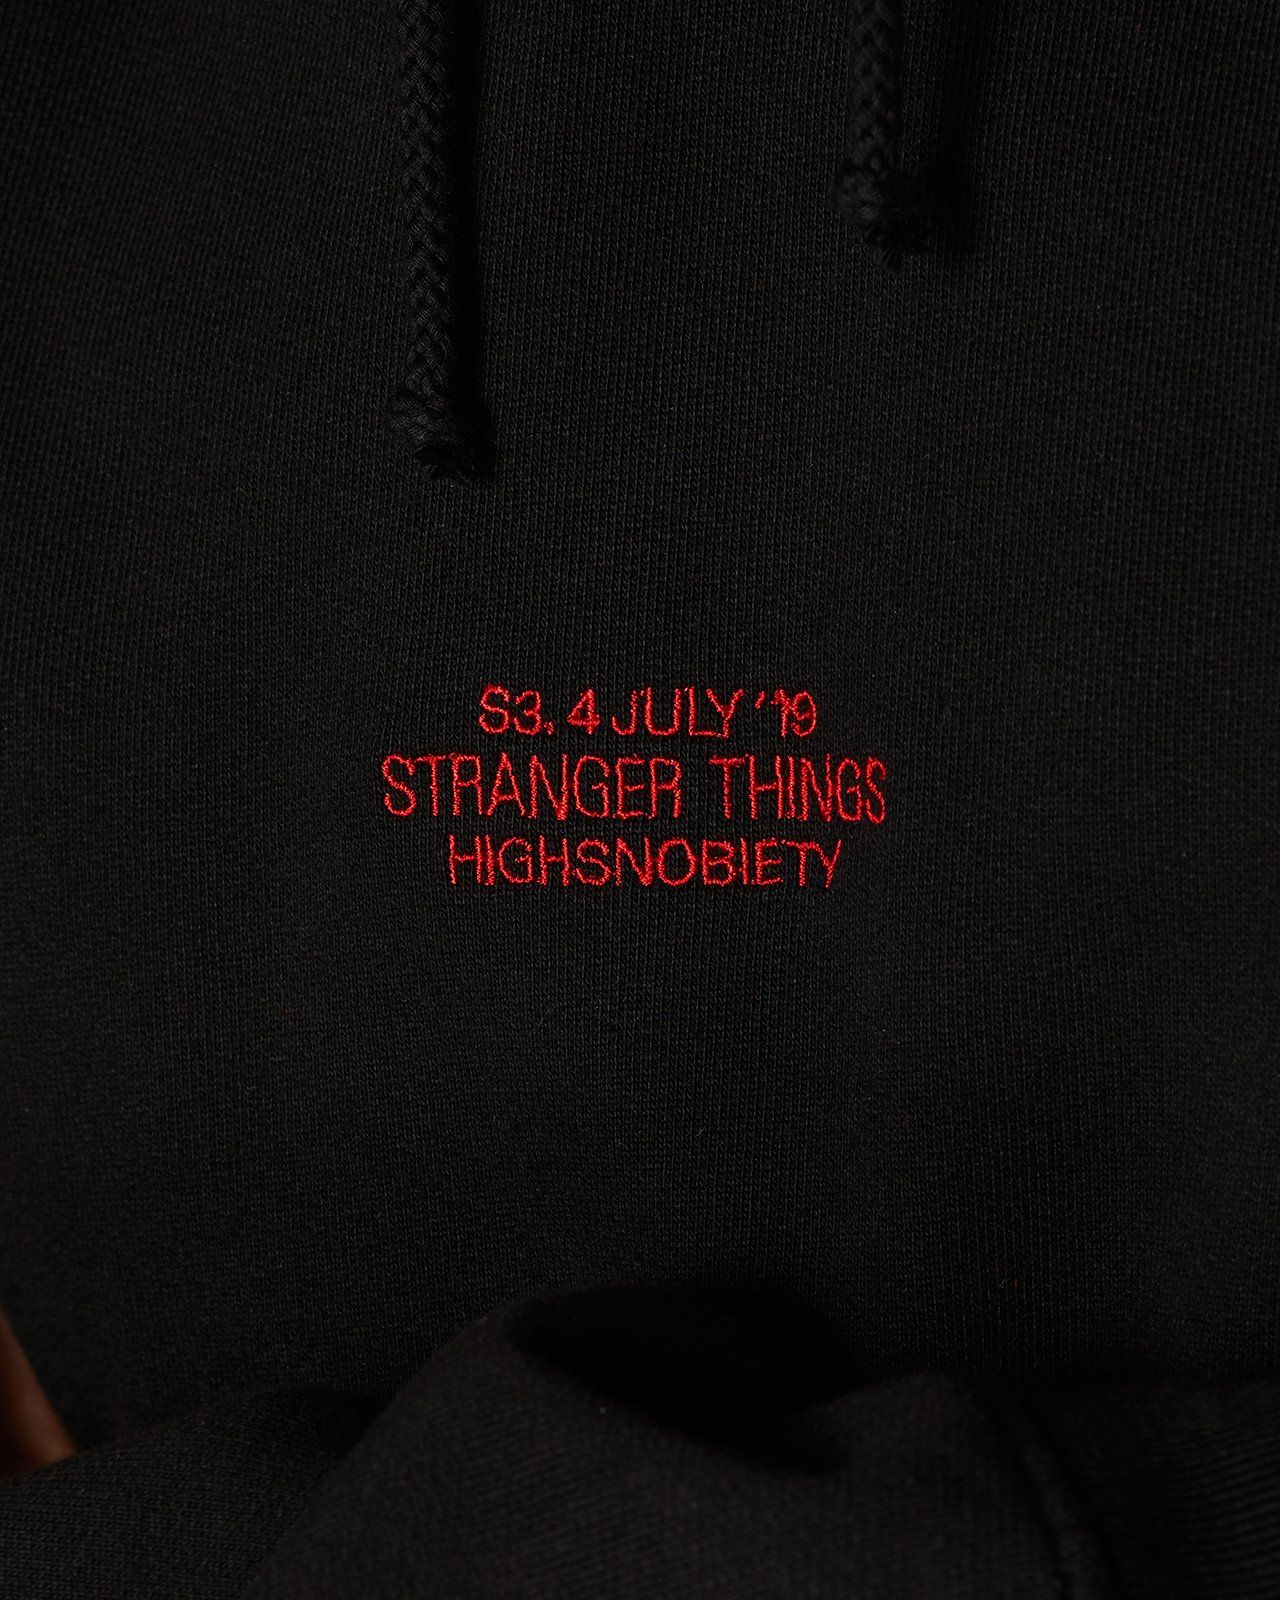 Stranger Things 3 x Highsnobiety Logo Hoodie - Black - Image 4